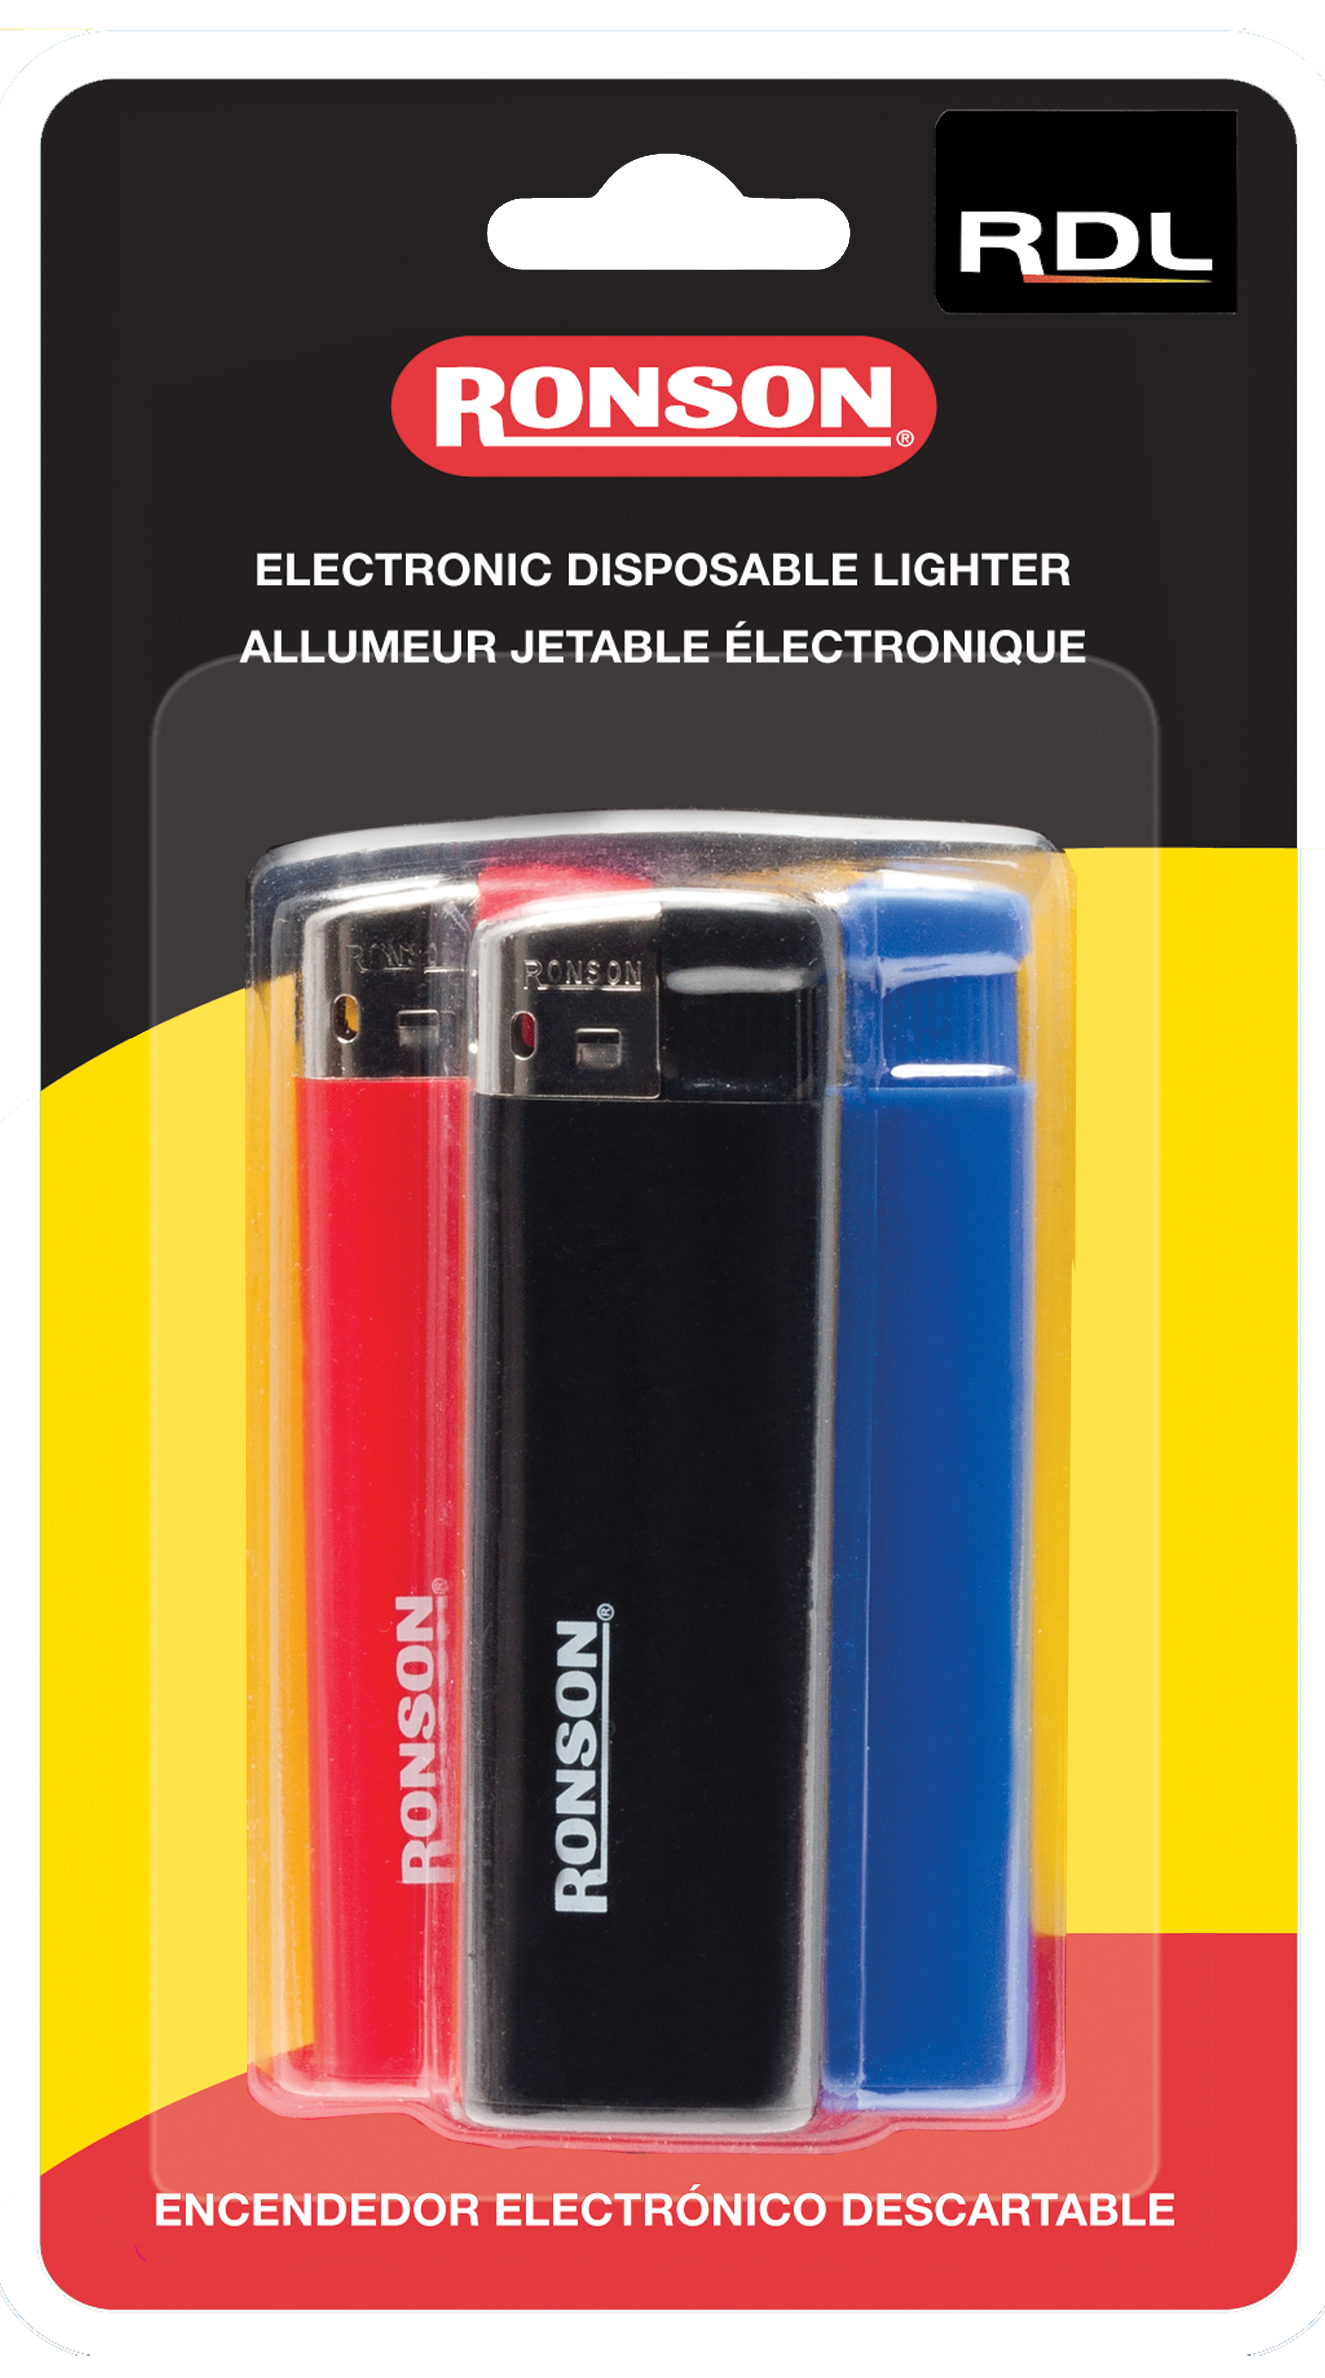 41803 - Ronson Disposable Lighter 3 pack Card